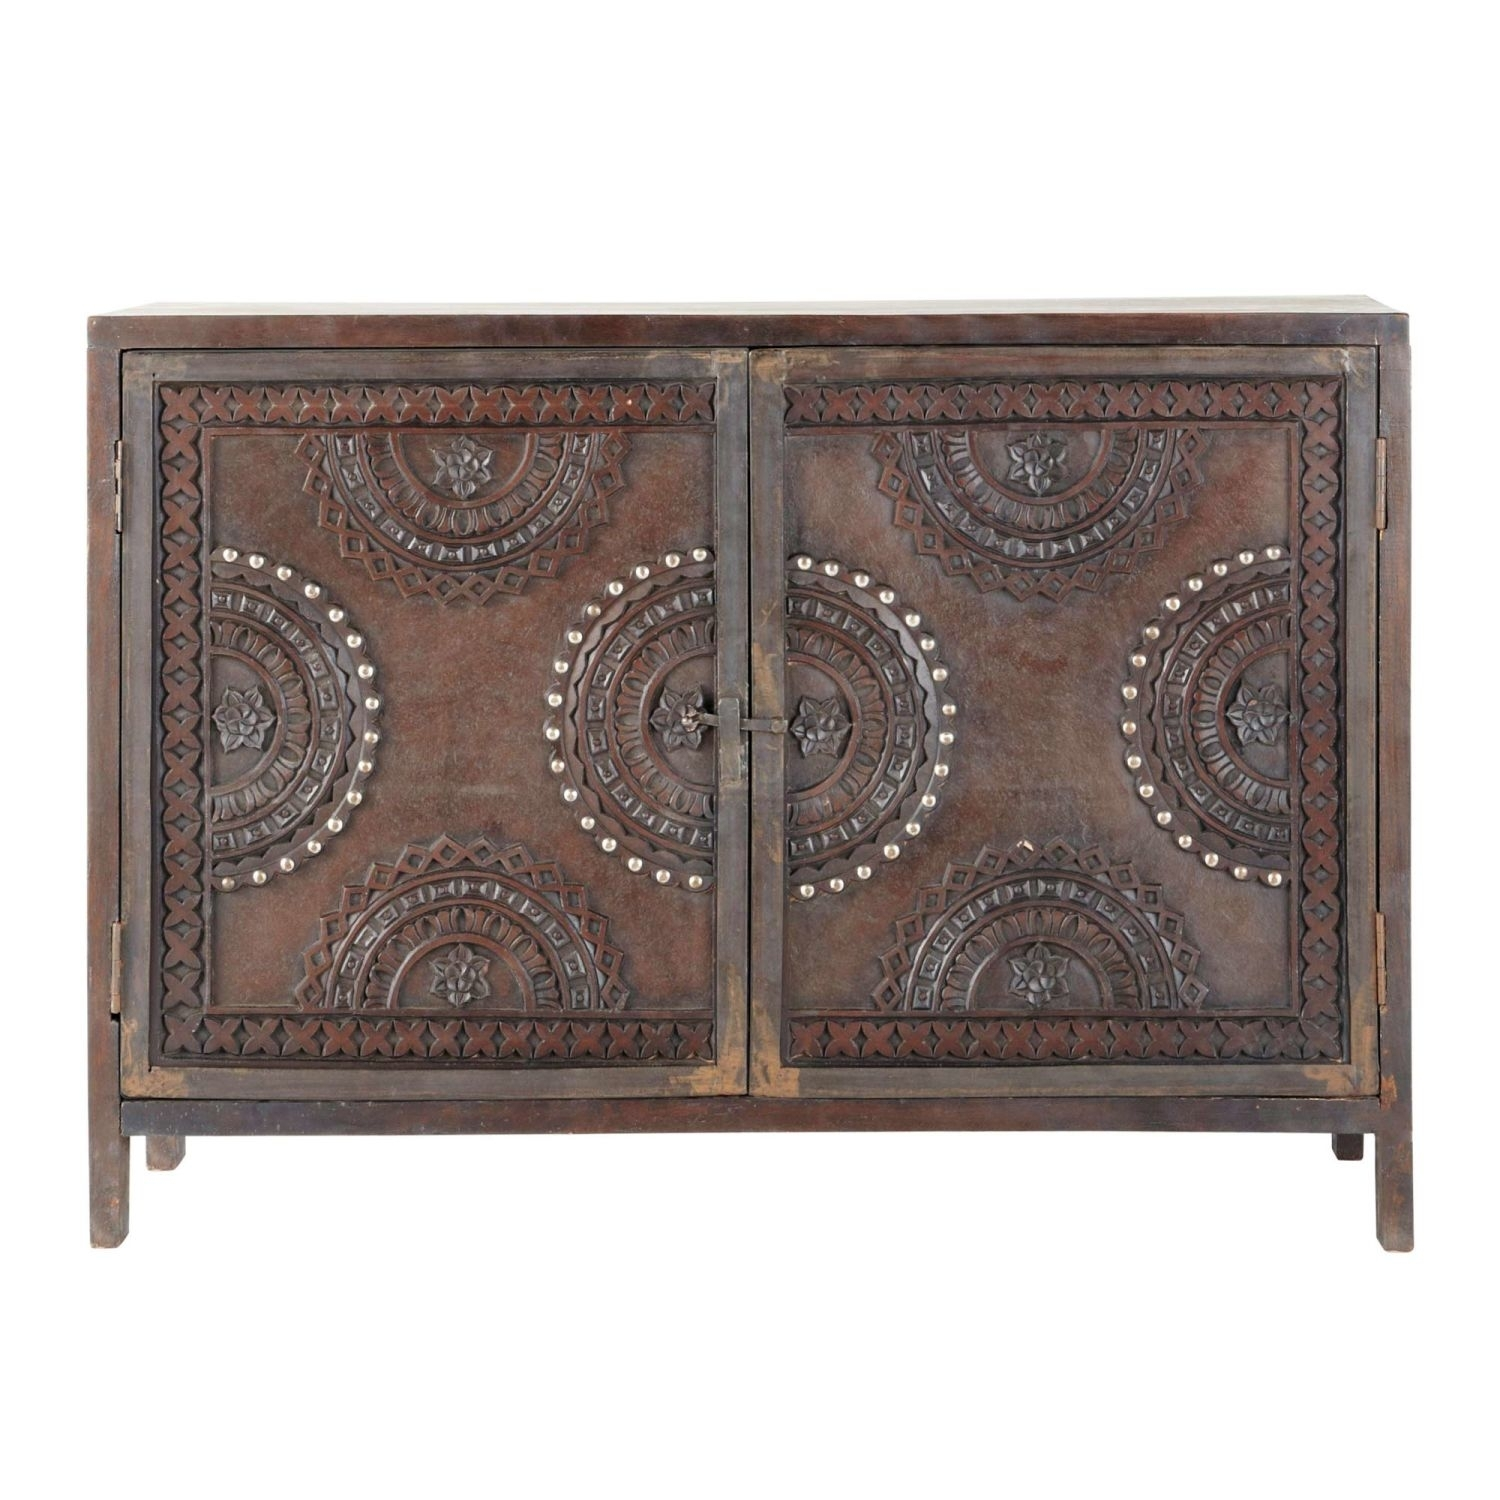 Mango Wood Carved Sideboard In Brown W 115Cm | Maisons Du Monde intended for Carved 4 Door Metal Frame Sideboards (Image 27 of 30)